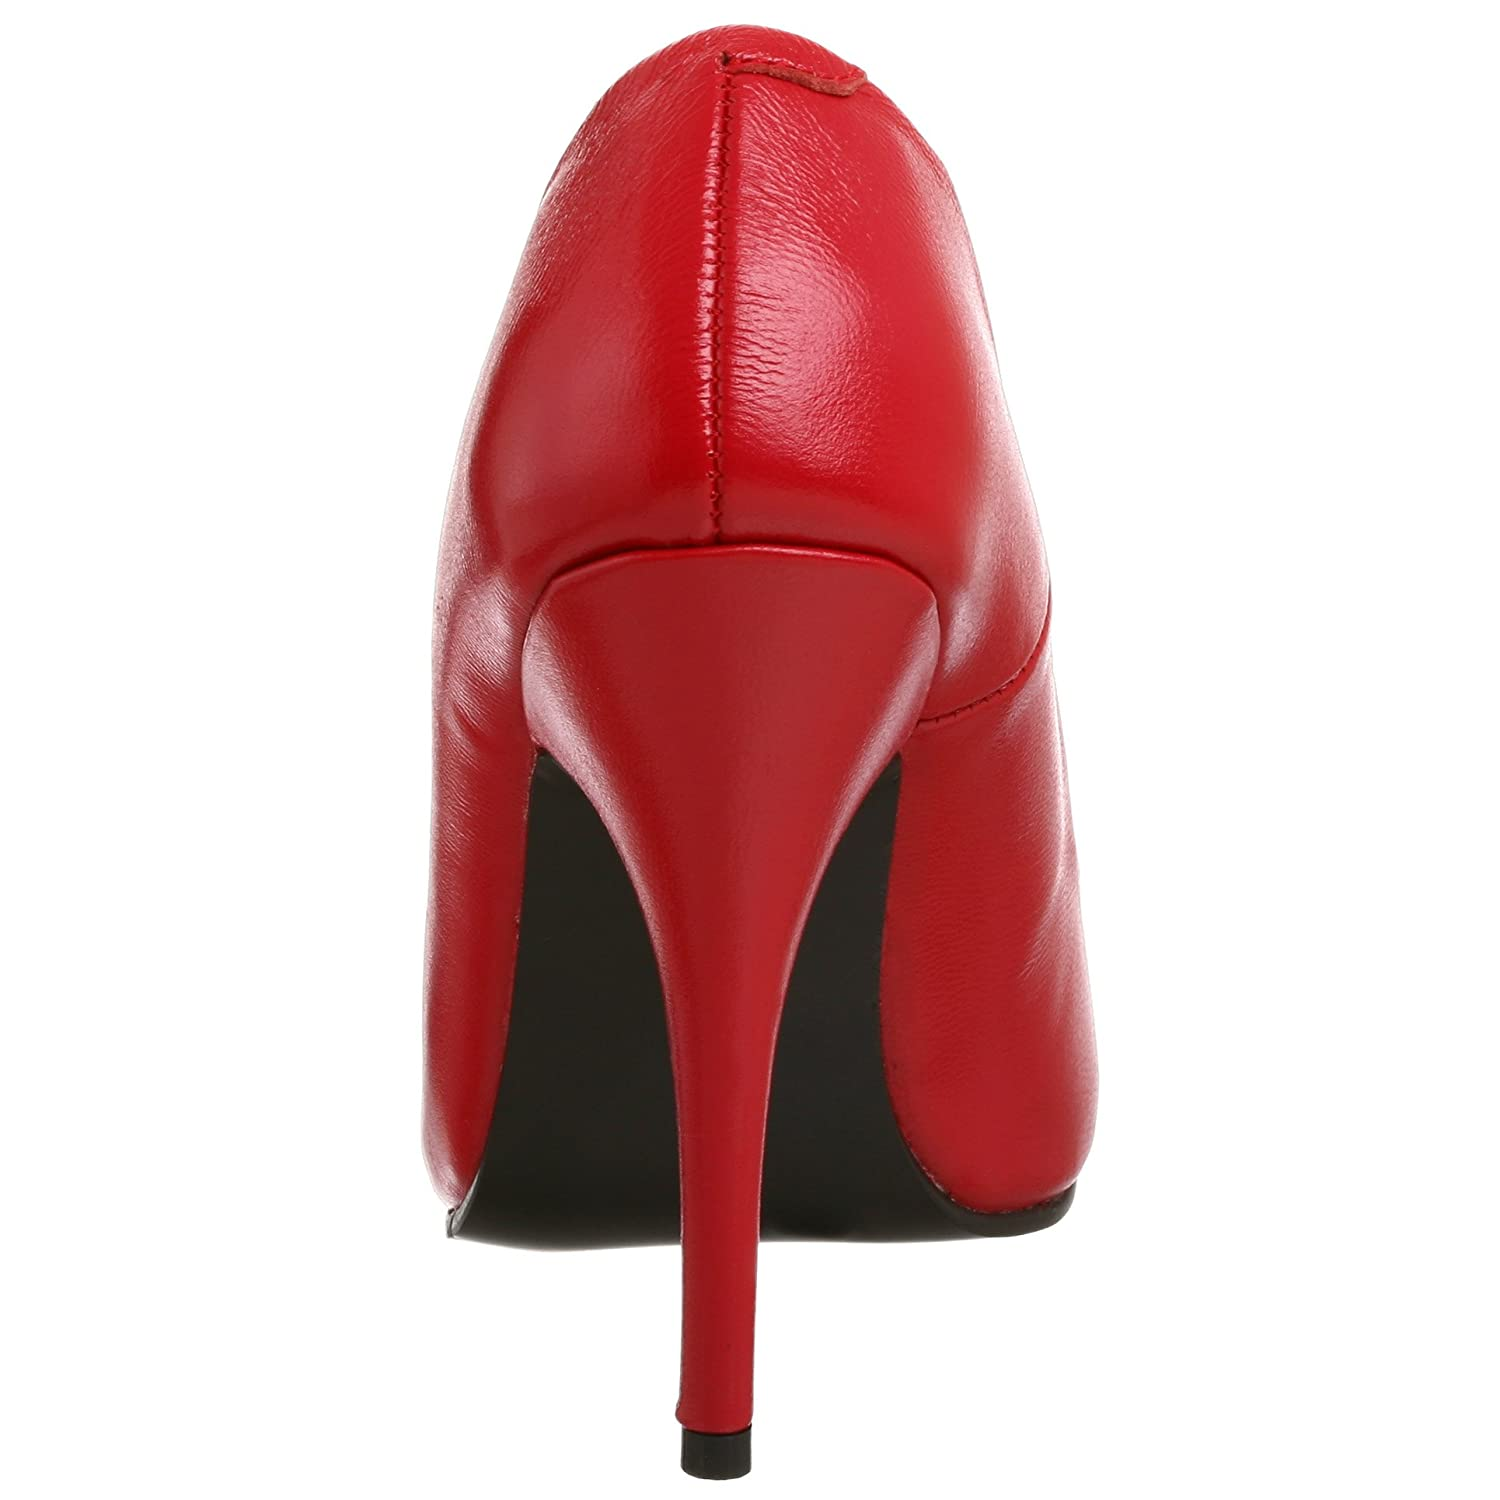 Pleaser SEDUCE-420 SEDUCE-420 Pleaser Damen Pumps Leder Rot 6f6898